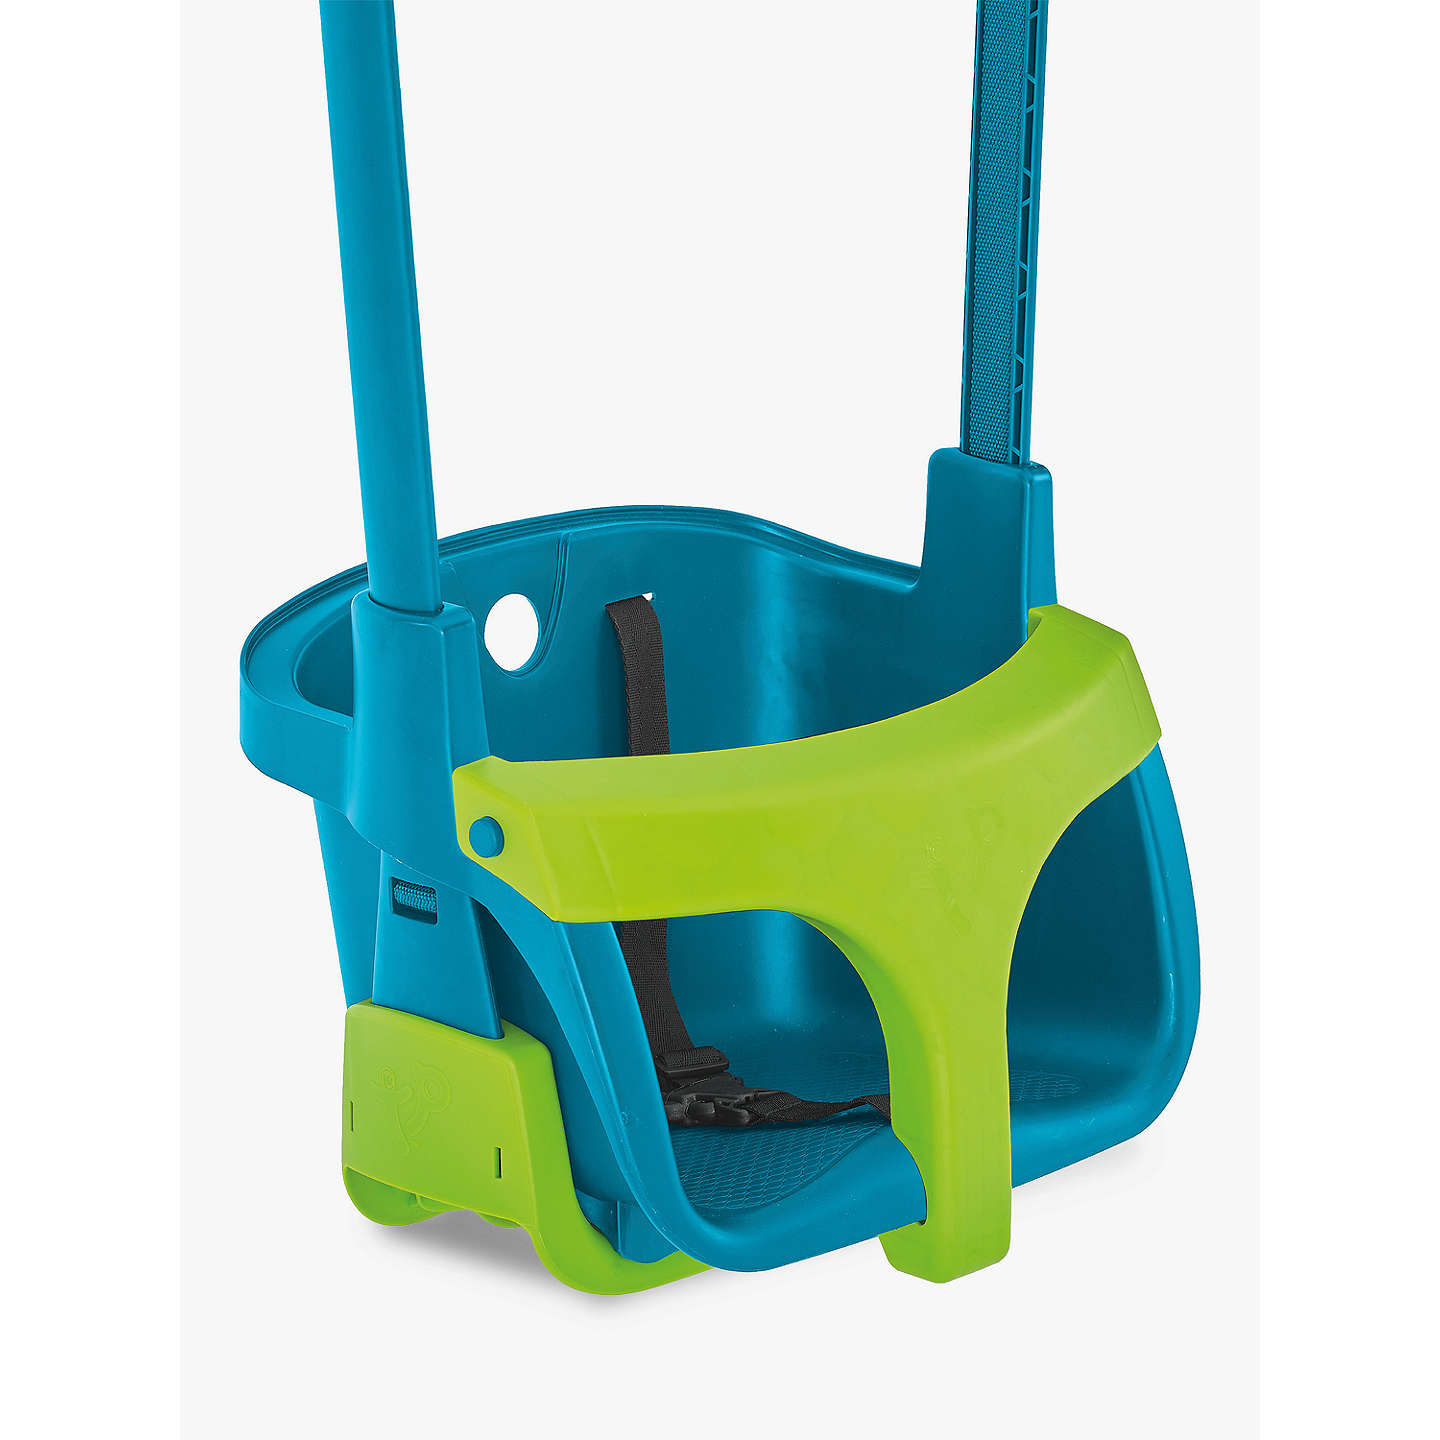 BuyTP Toys QuadPod Swing Seat Online at johnlewis.com